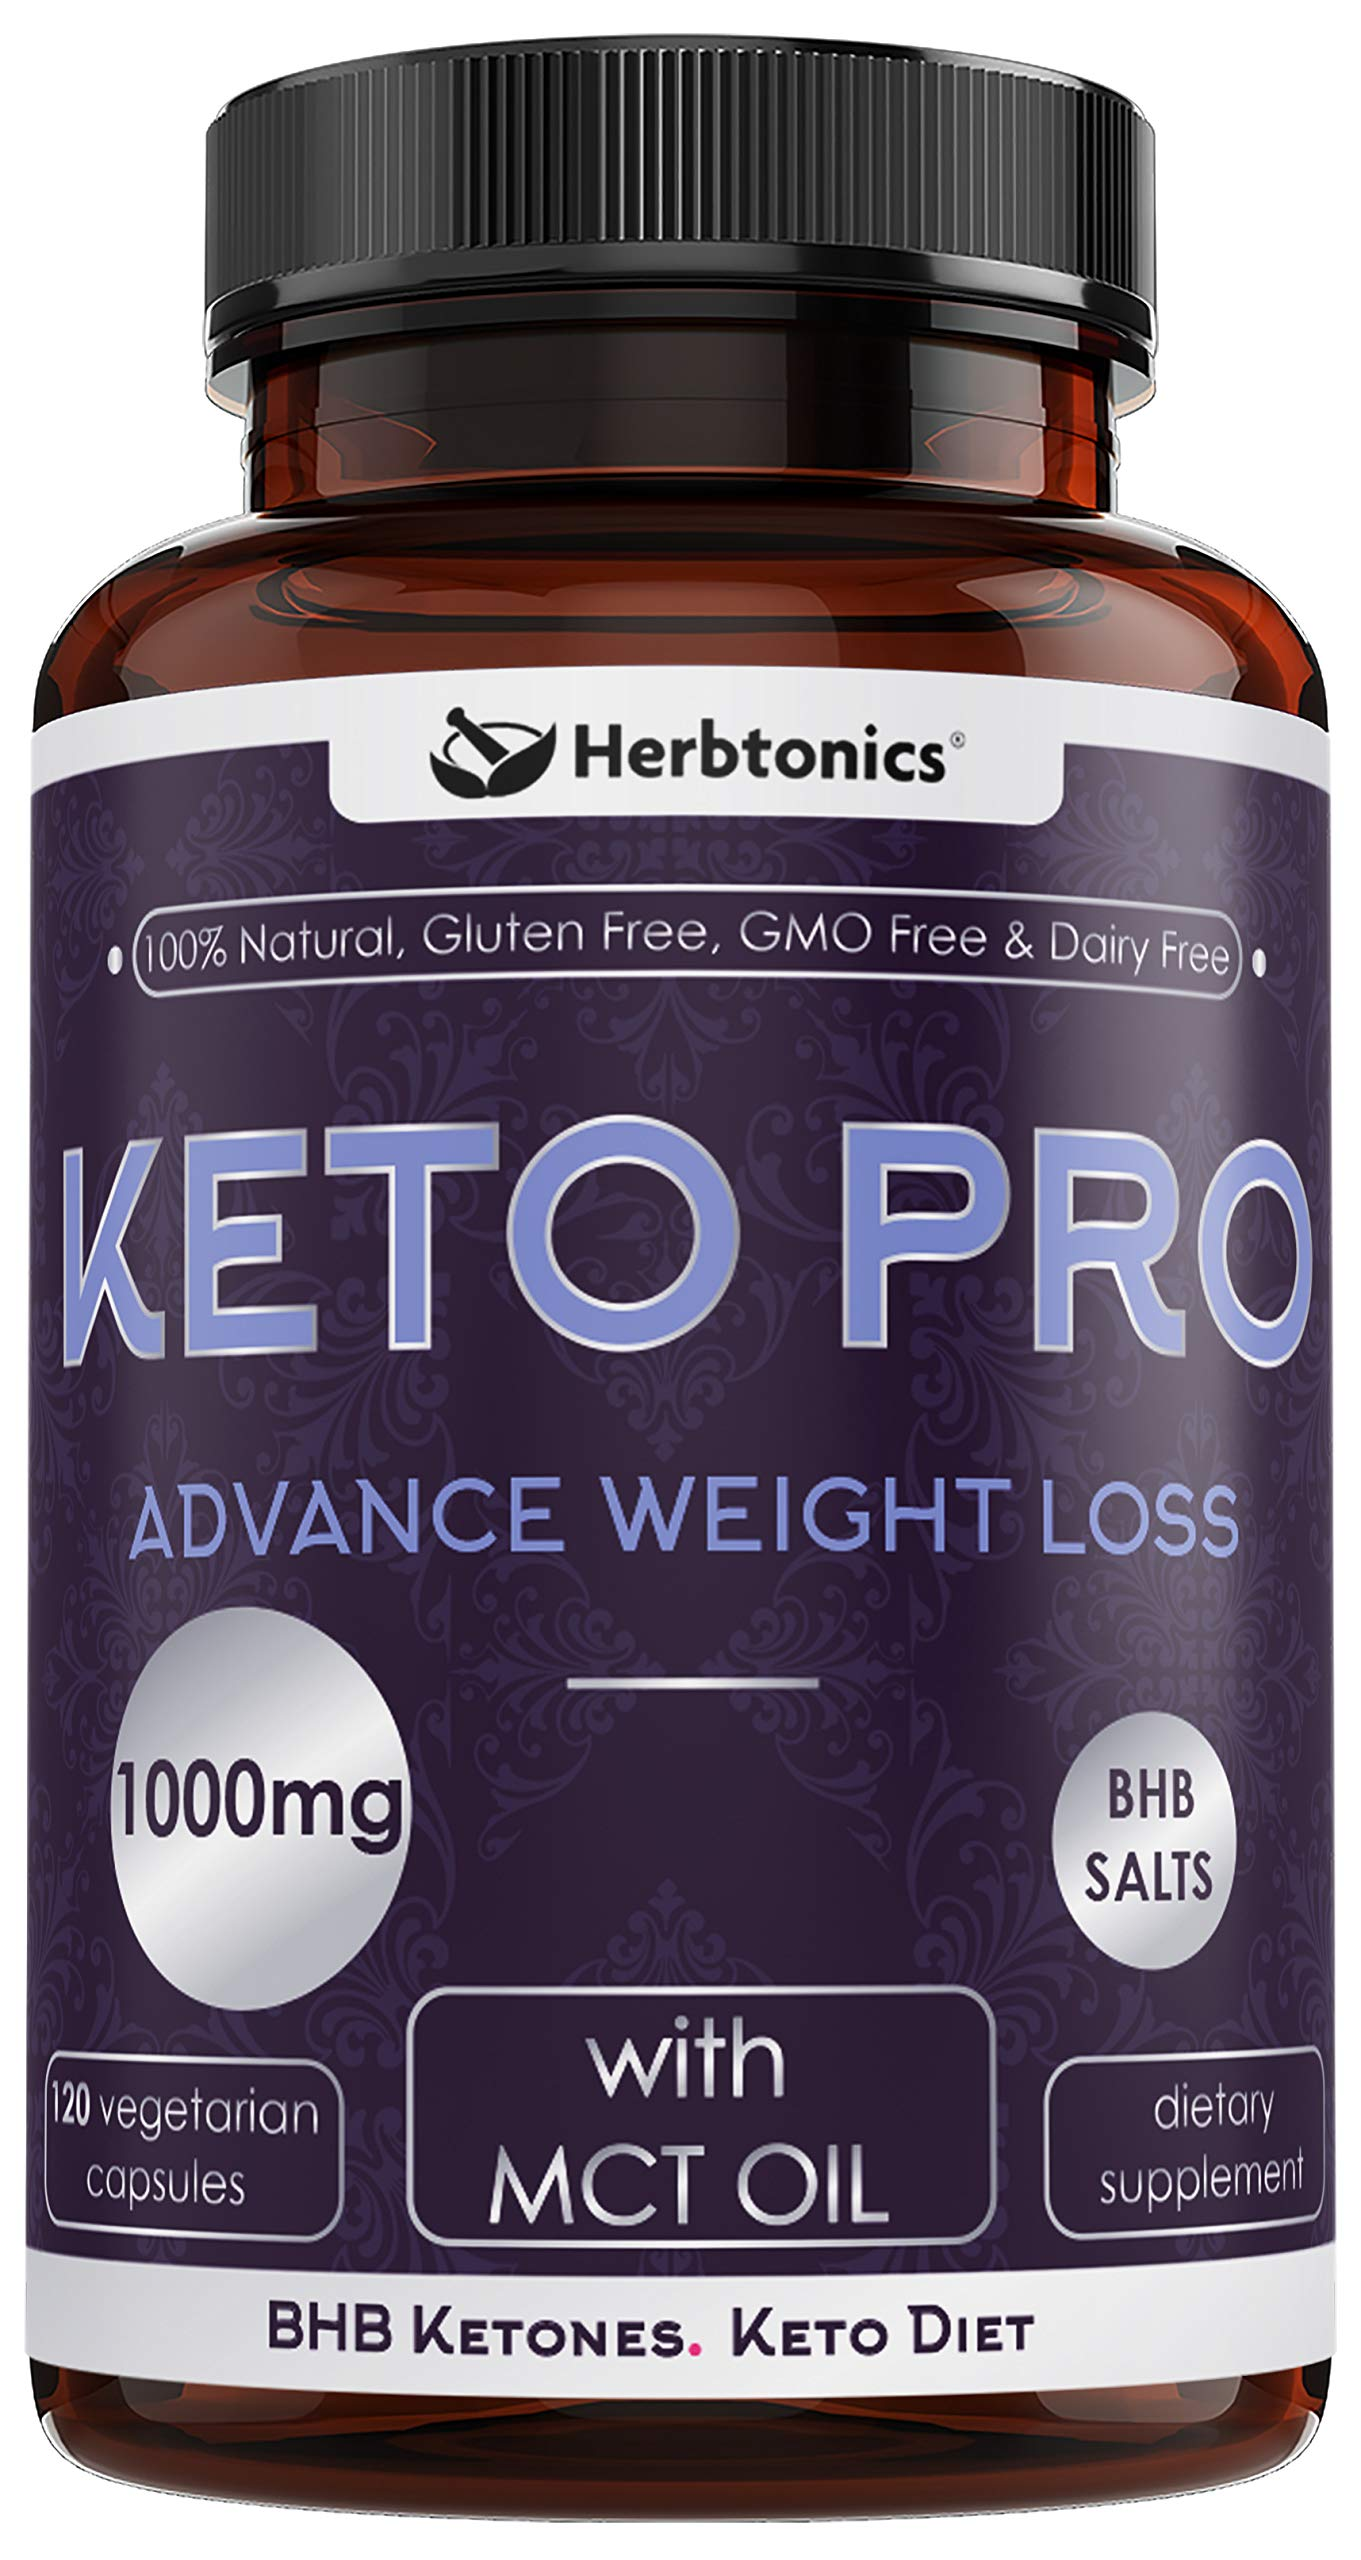 Fat Burners for Women and Men - Keto Diet Pills Weight Loss Supplement from Ketones BHB Salts and MCT Oil Carb Blocker Fat Burner, Achieve Perfect Ketosis and Block Carbs Keto Supplement